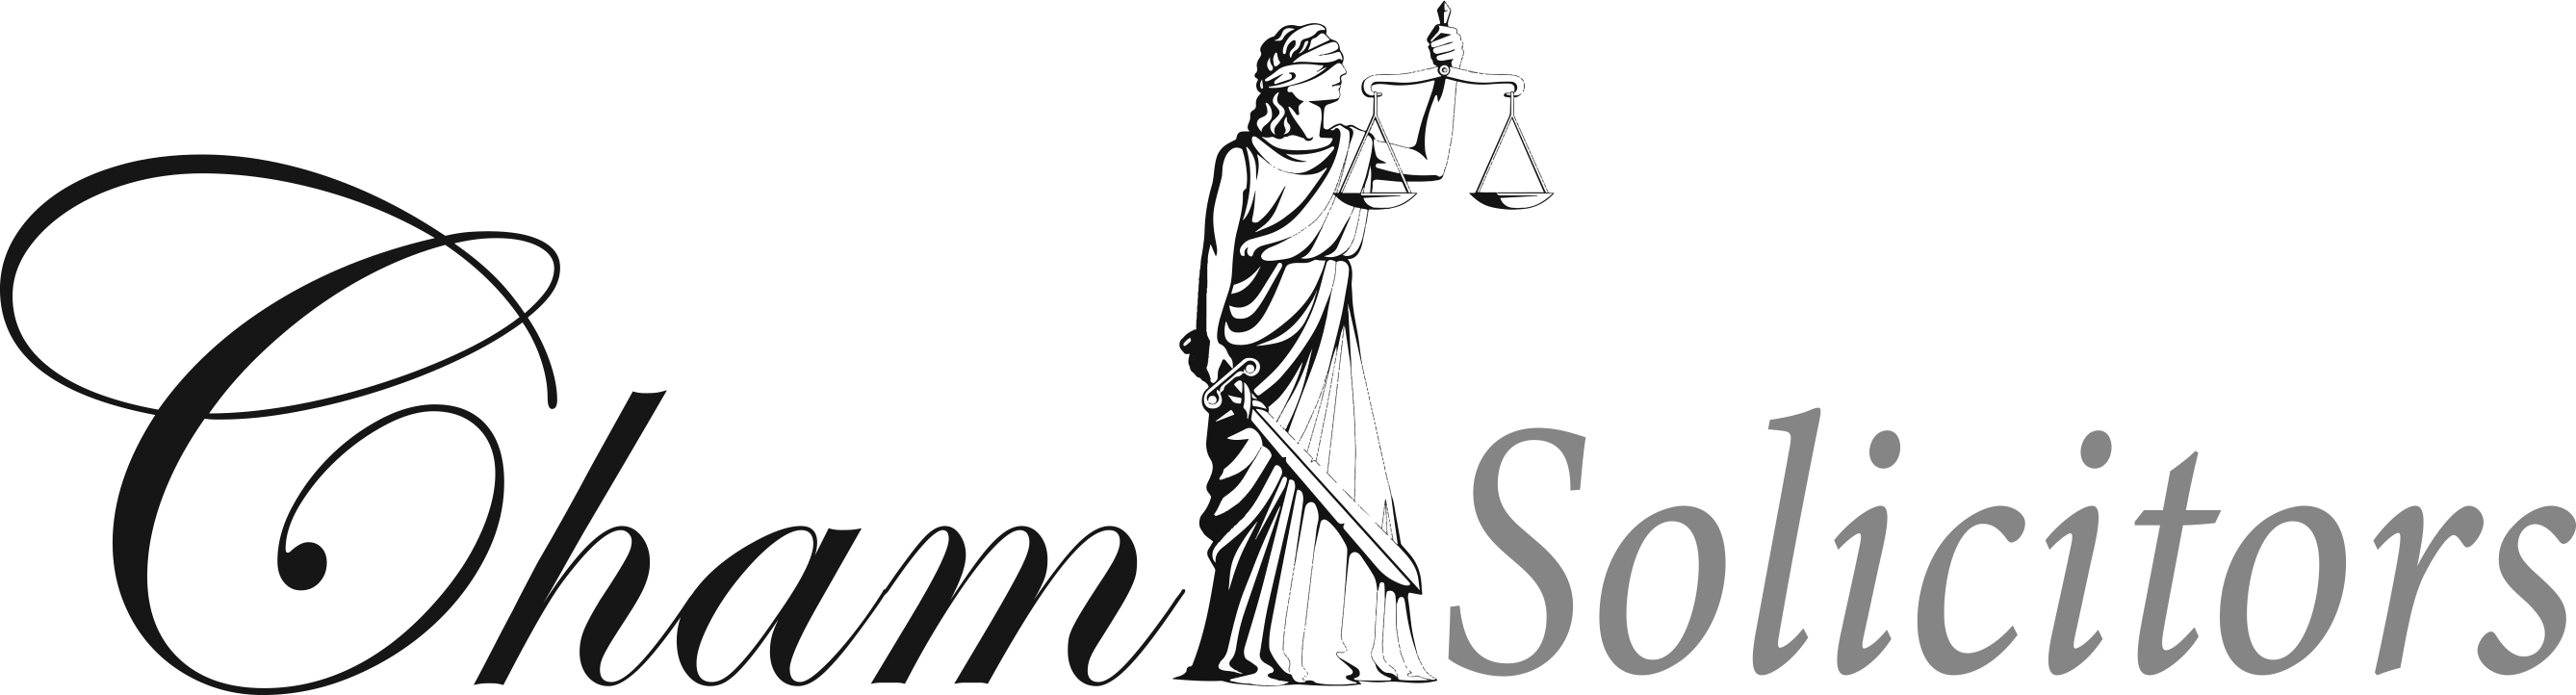 Cham Solicitors